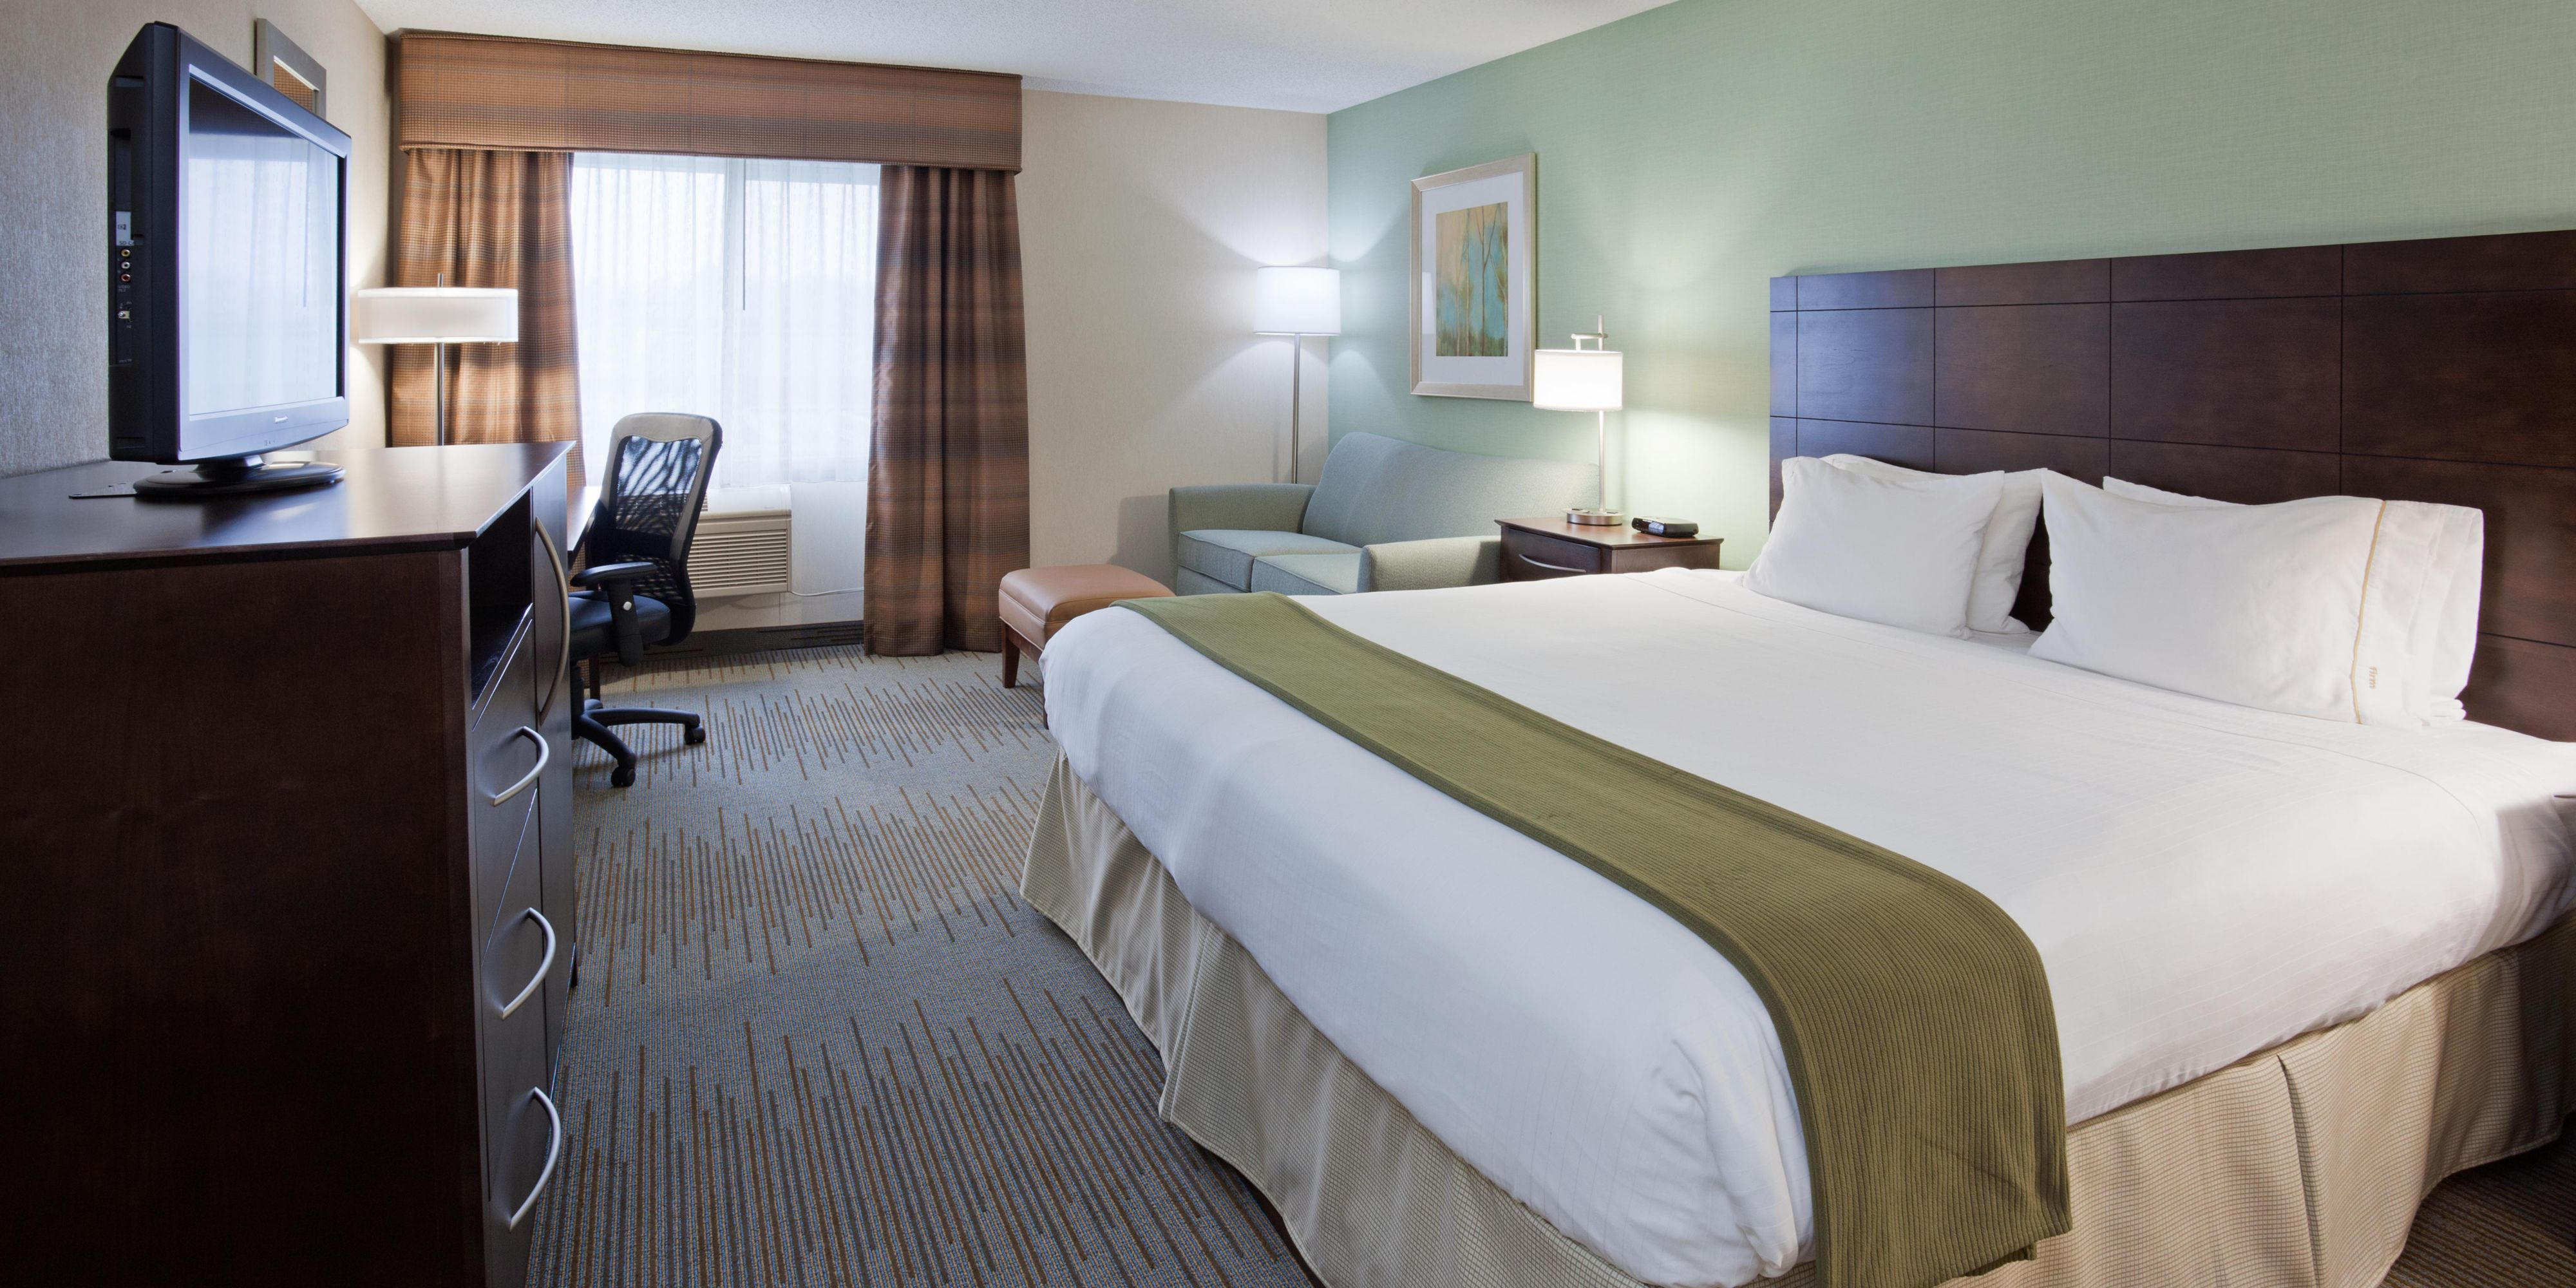 Holiday Inn Express & Suites St Paul Ne Vadnais Heights Hotel by IHG